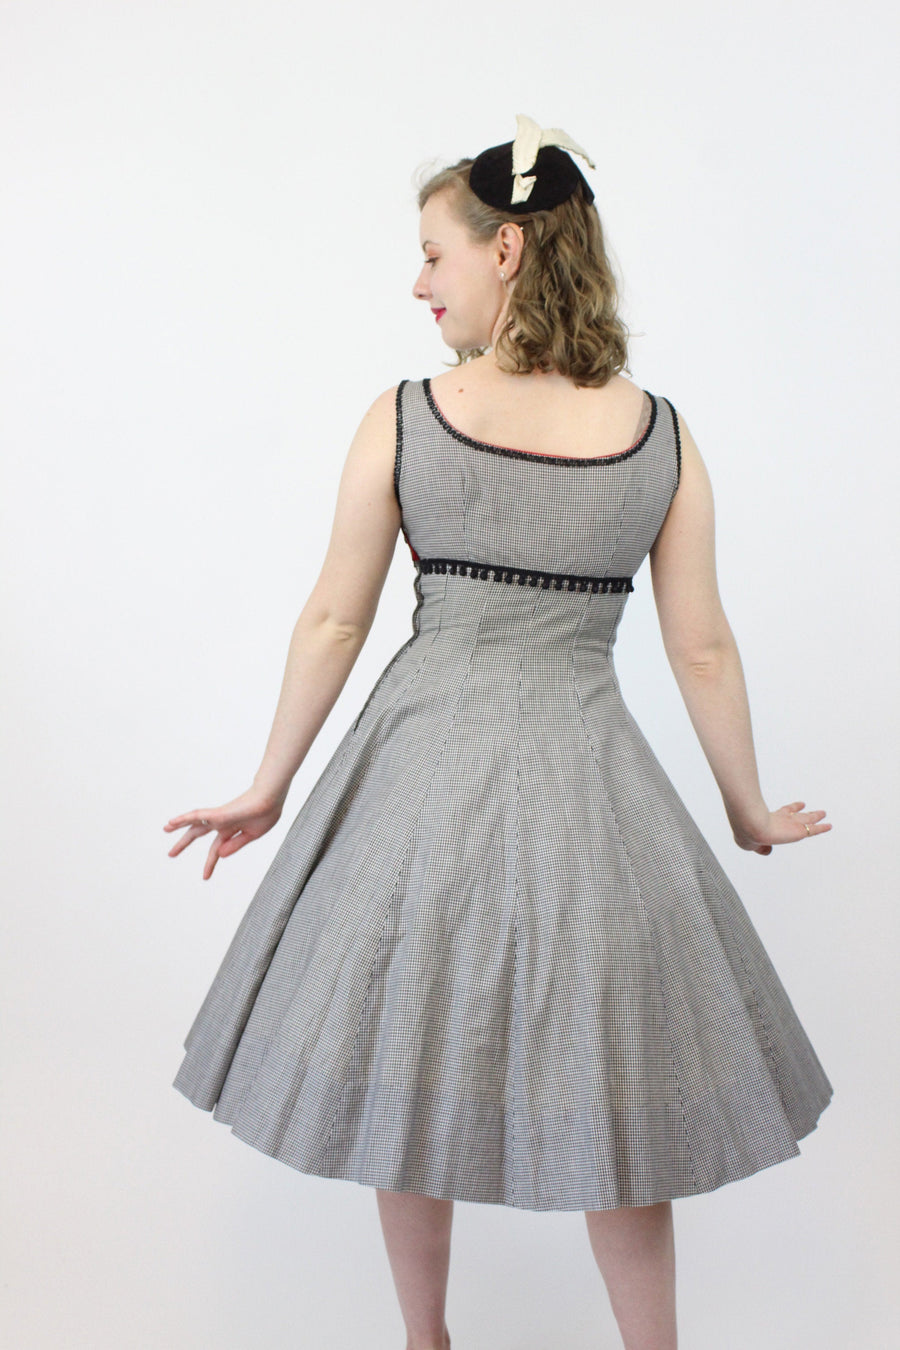 1950s gingham dress xs | vintage cotton soutache beaded | new in